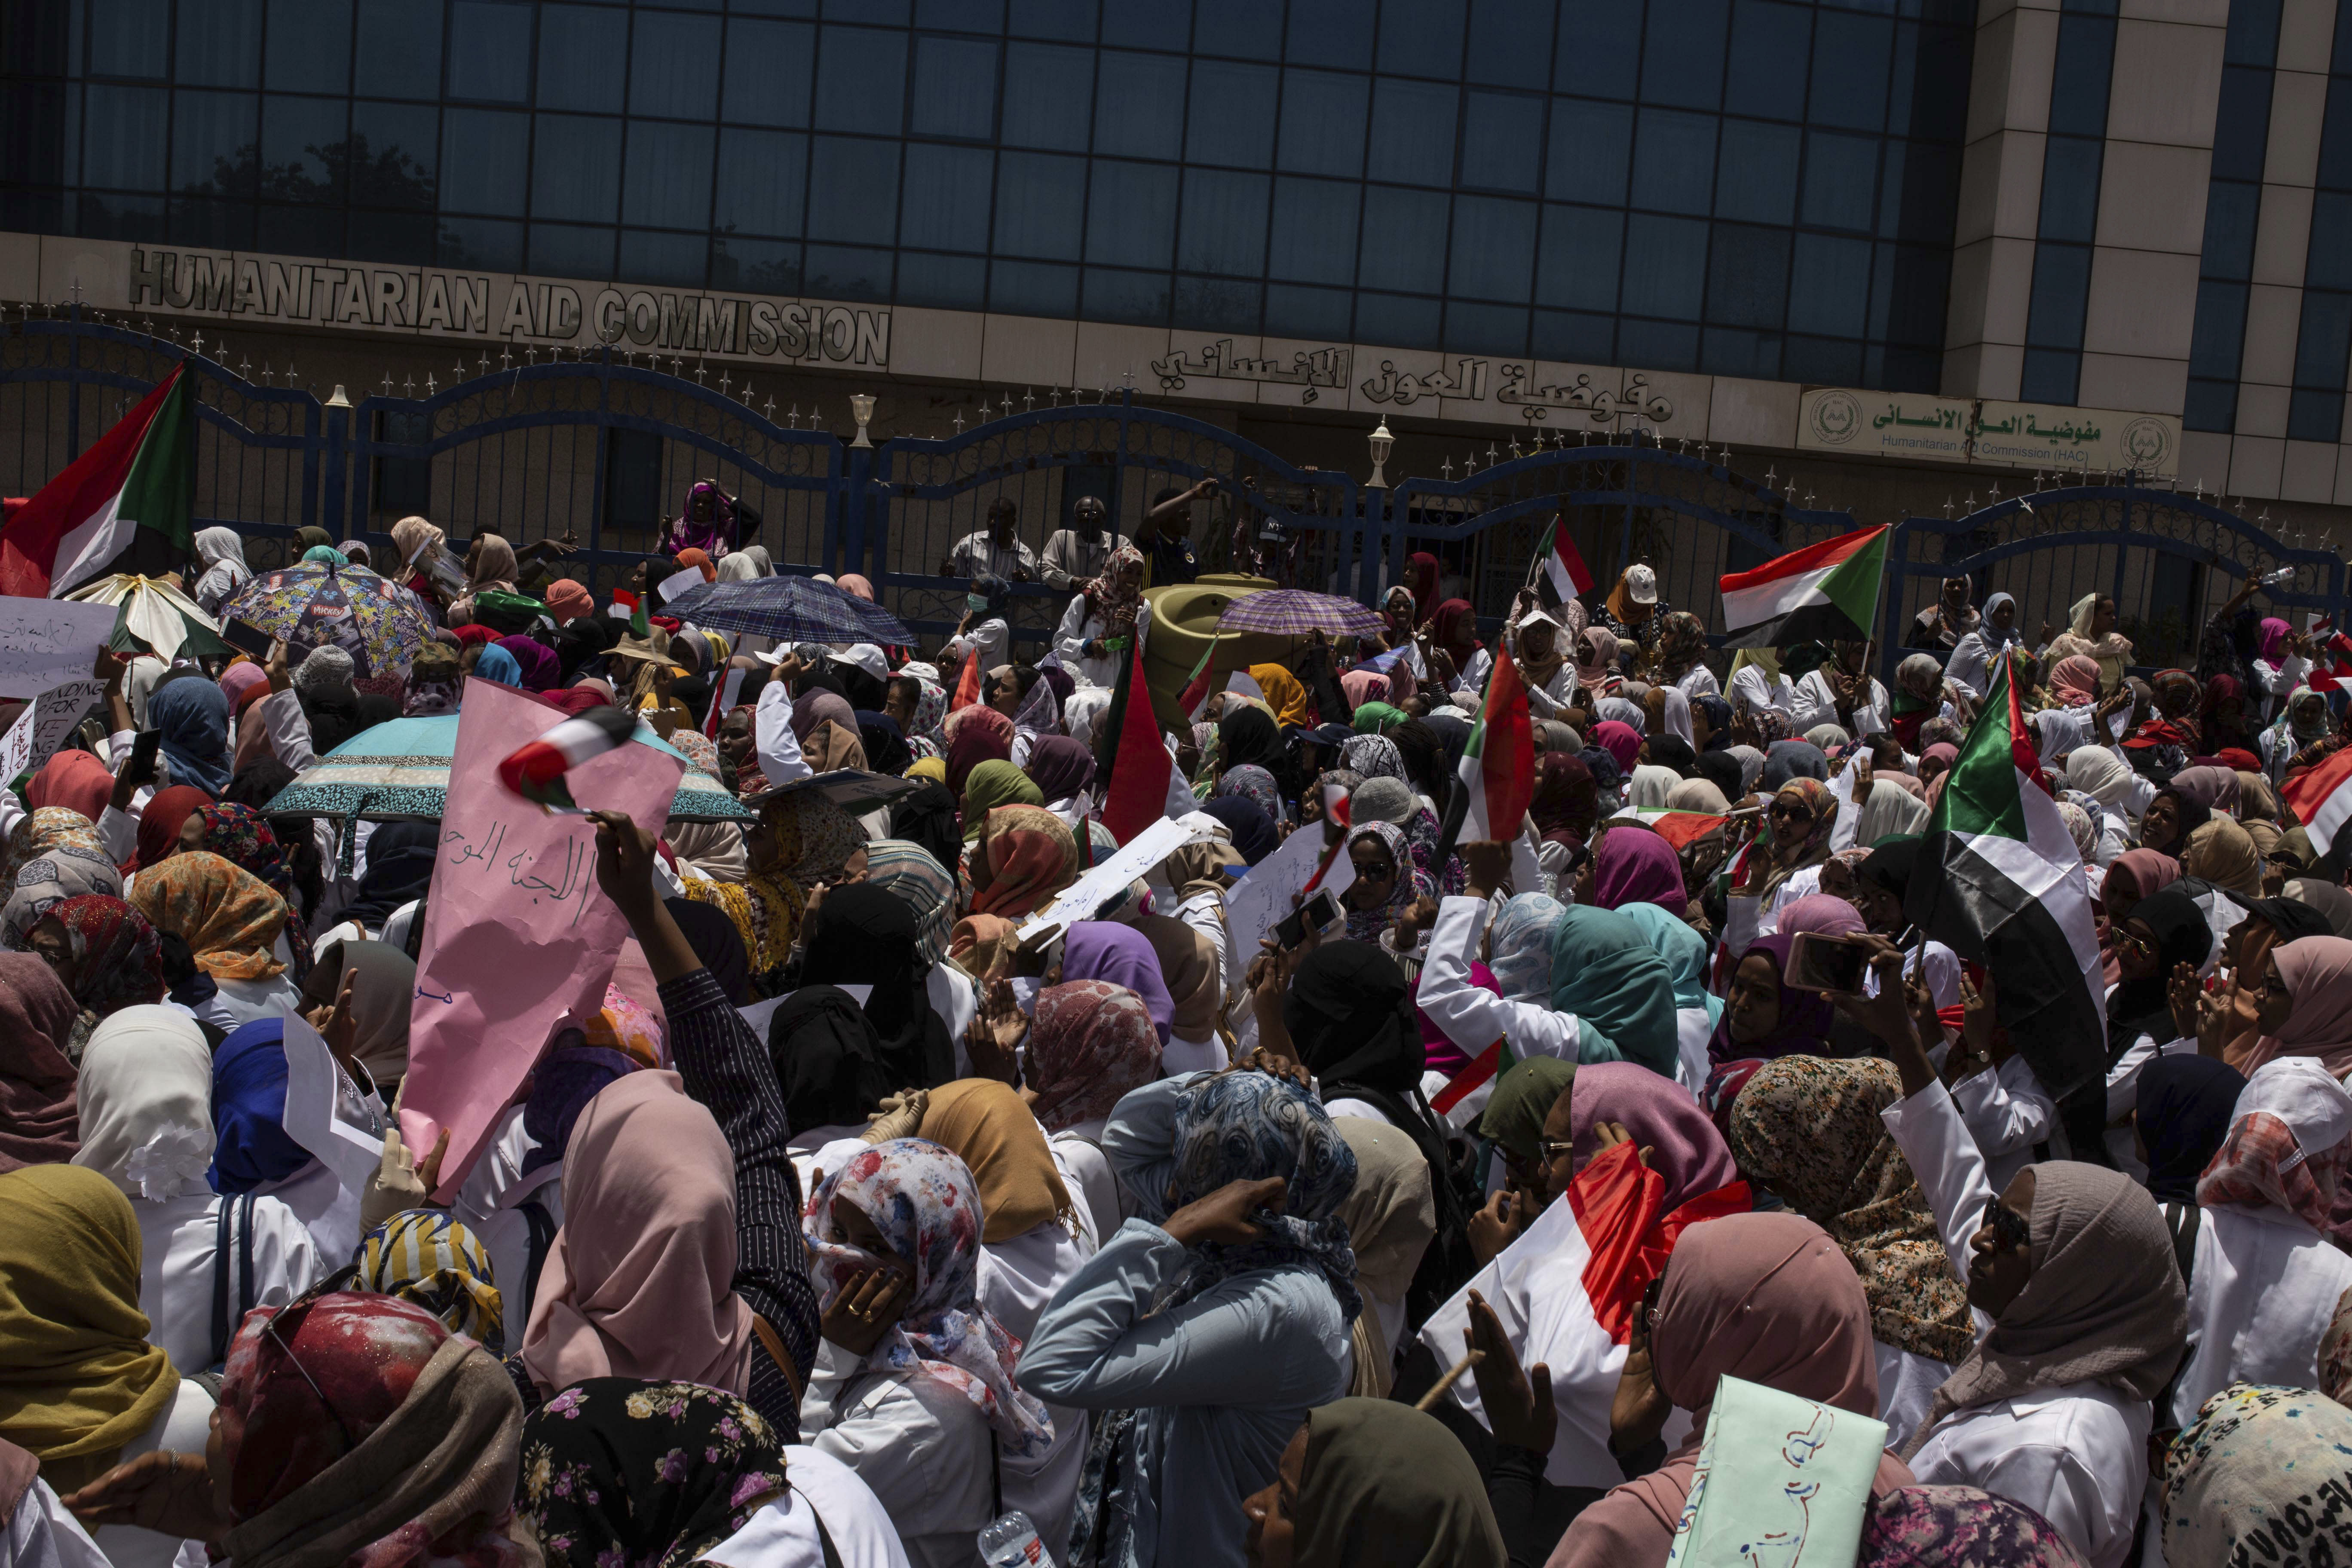 A group of protesters from the Sudanese medical profession syndicate march at the sit-in inside the Armed Forces Square, in Khartoum, Sudan, Wednesday, April 17, 2019. A Sudanese official and a former minister said the military has transferred ousted President Omar al-Bashir to the city's Kopar Prison in Khartoum. The move came after organizers of the street protests demanded the military move al-Bashir to an official prison. (AP Photos/Salih Basheer)